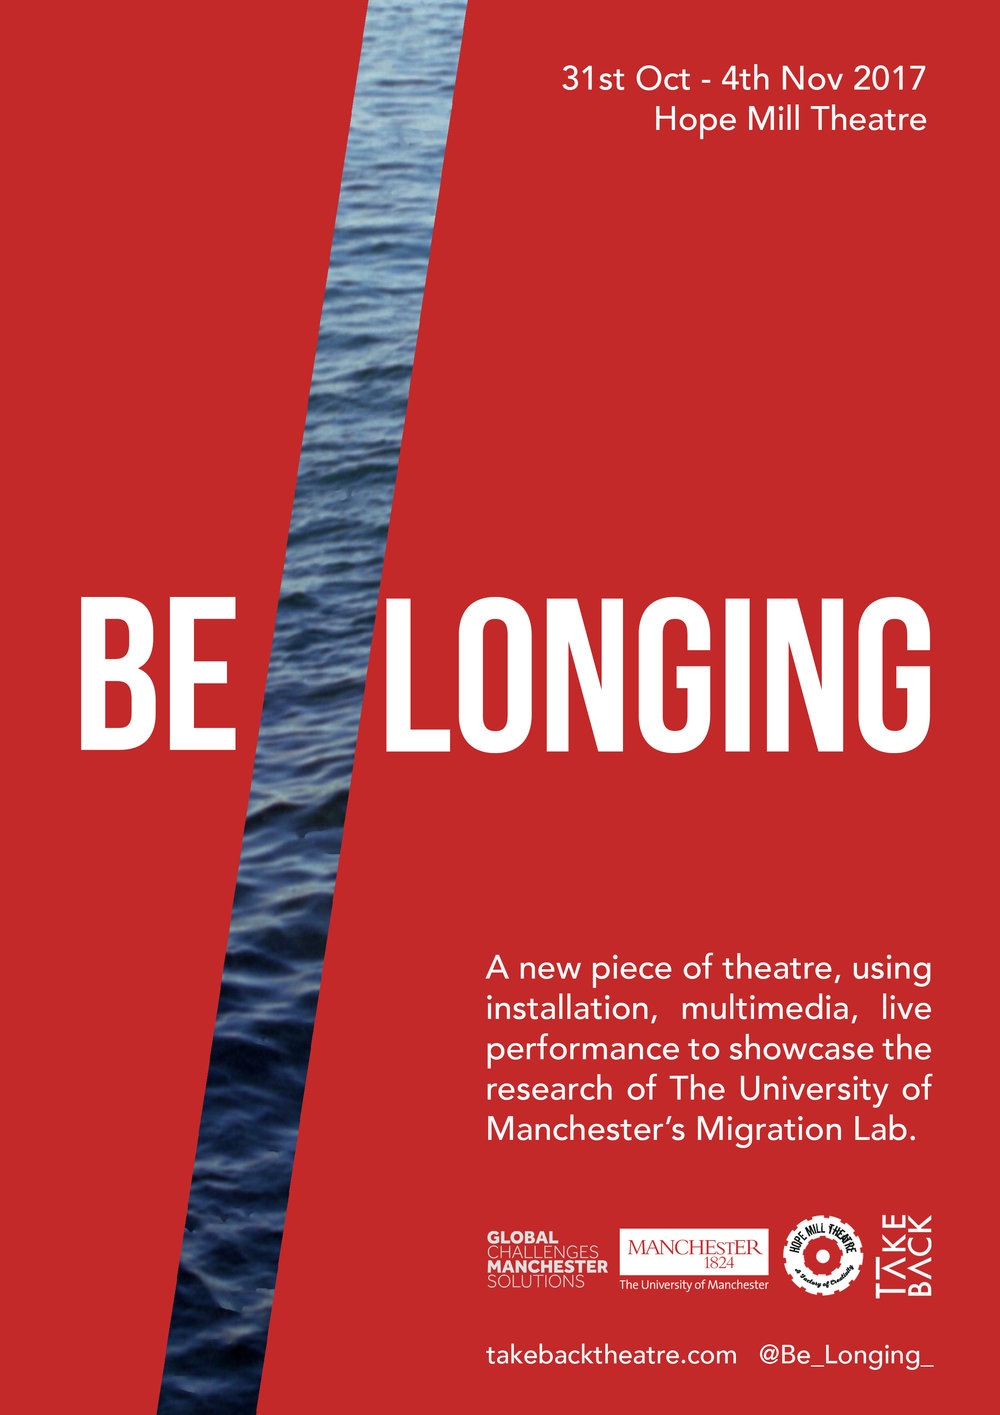 Be_Longing. 31st Oct -4th Nov 2017 Hope Mill Theatre